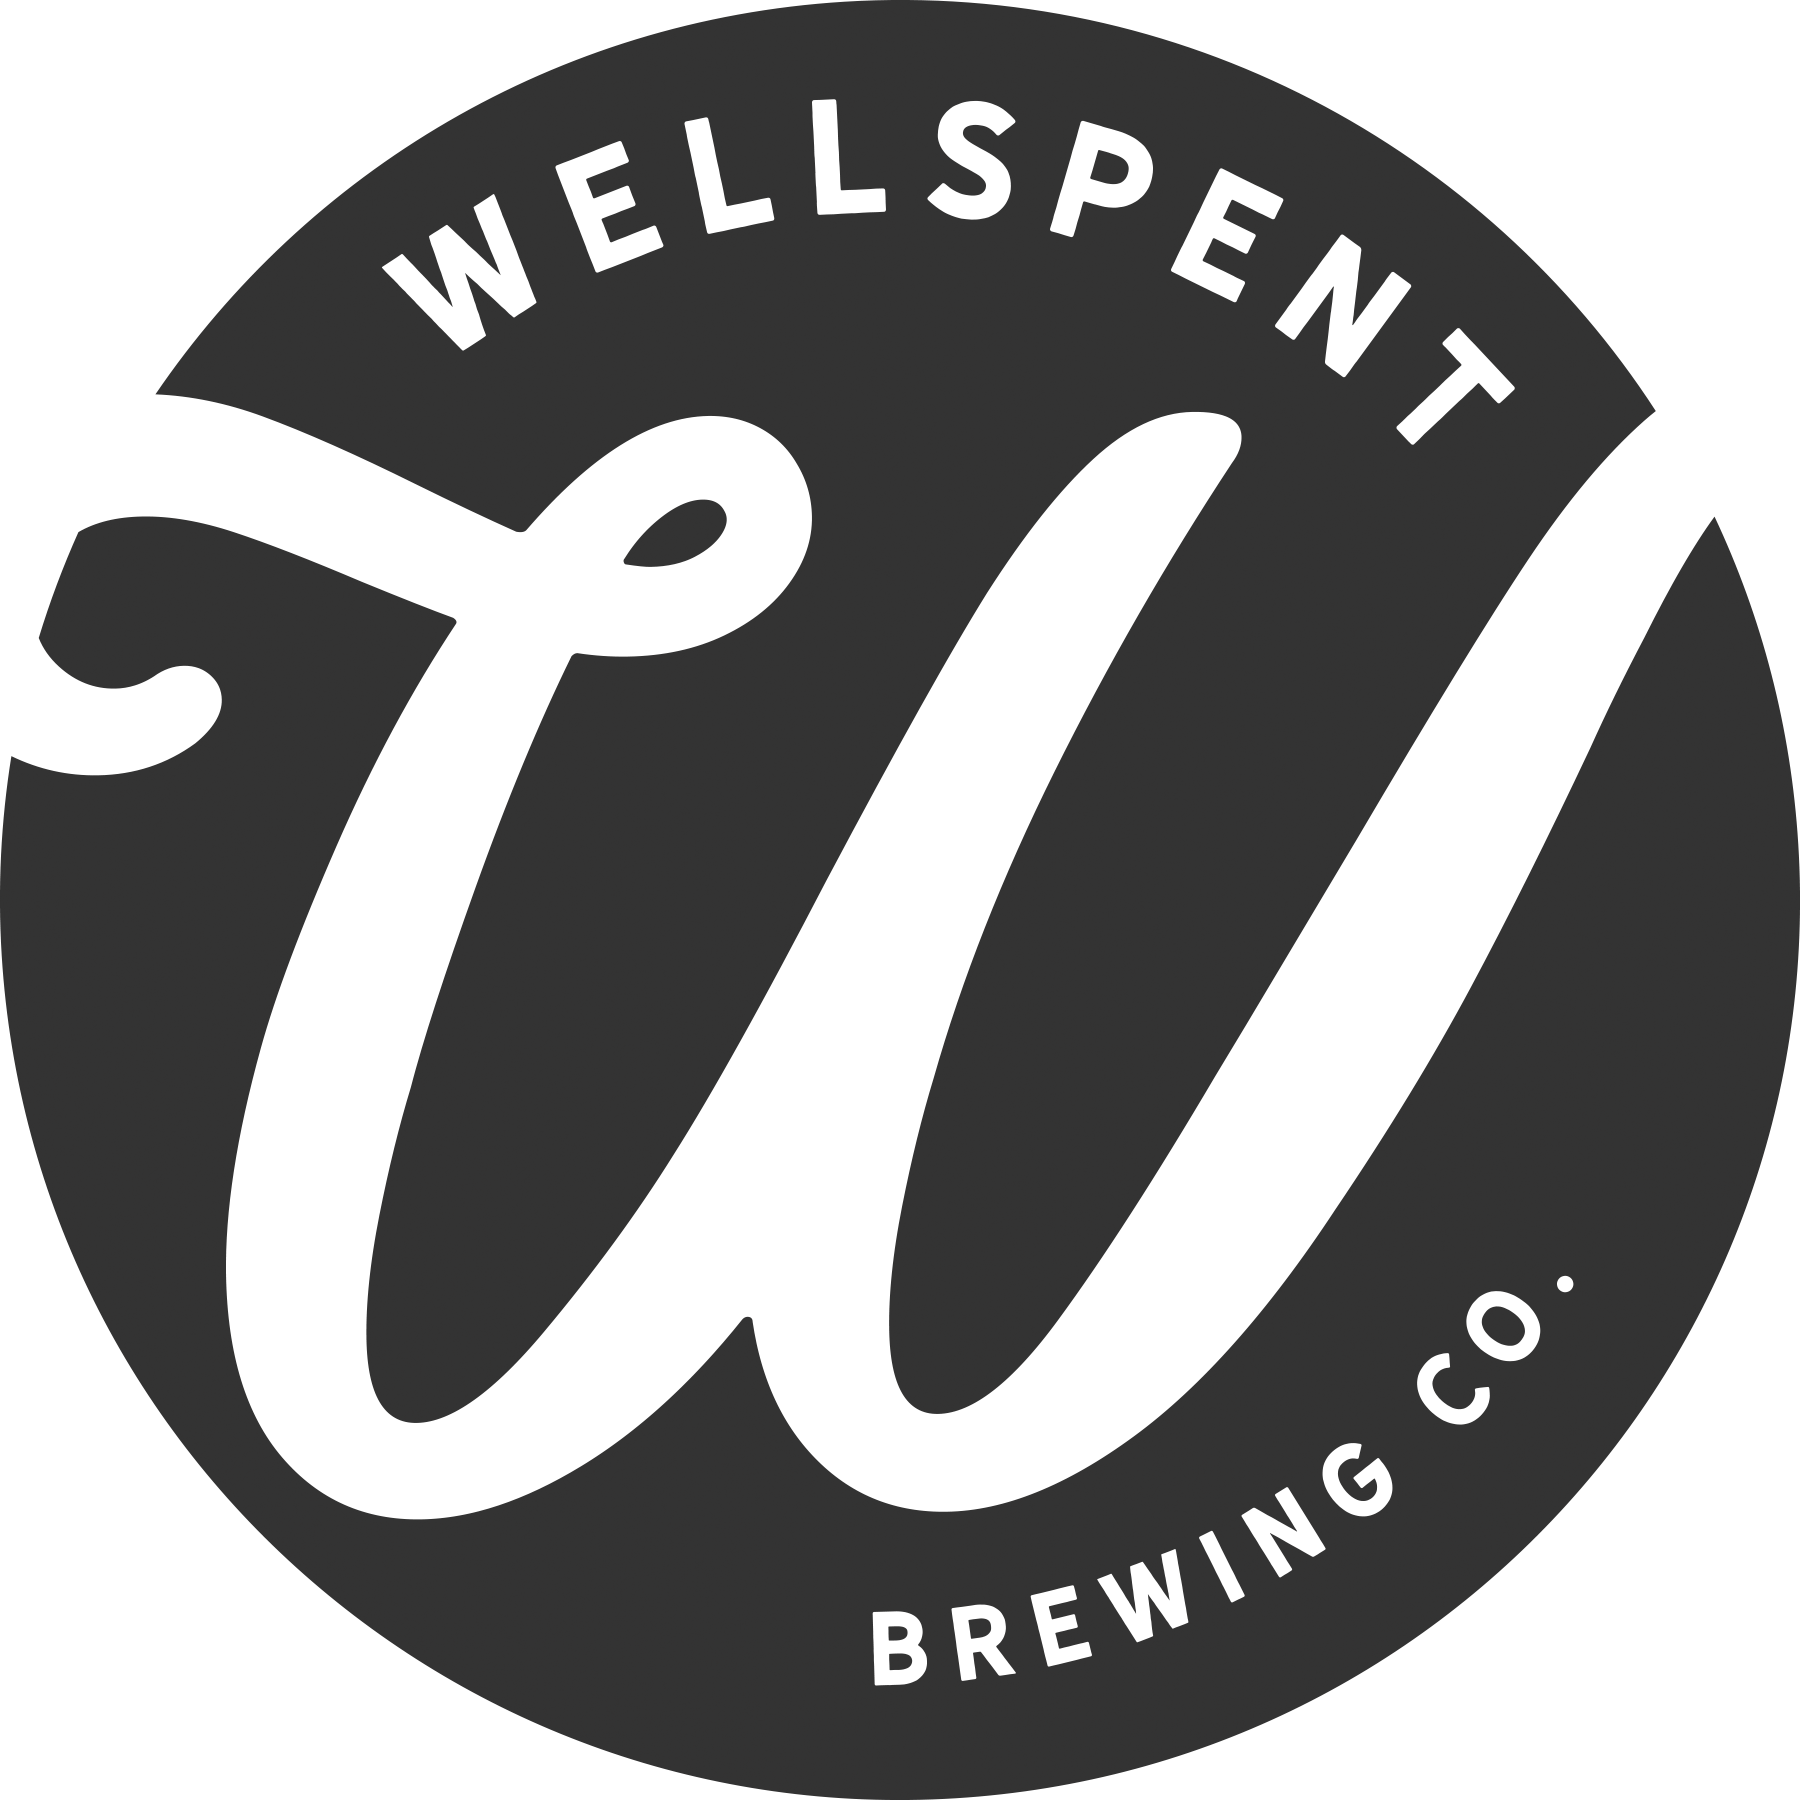 Wellspent Brewing Co.